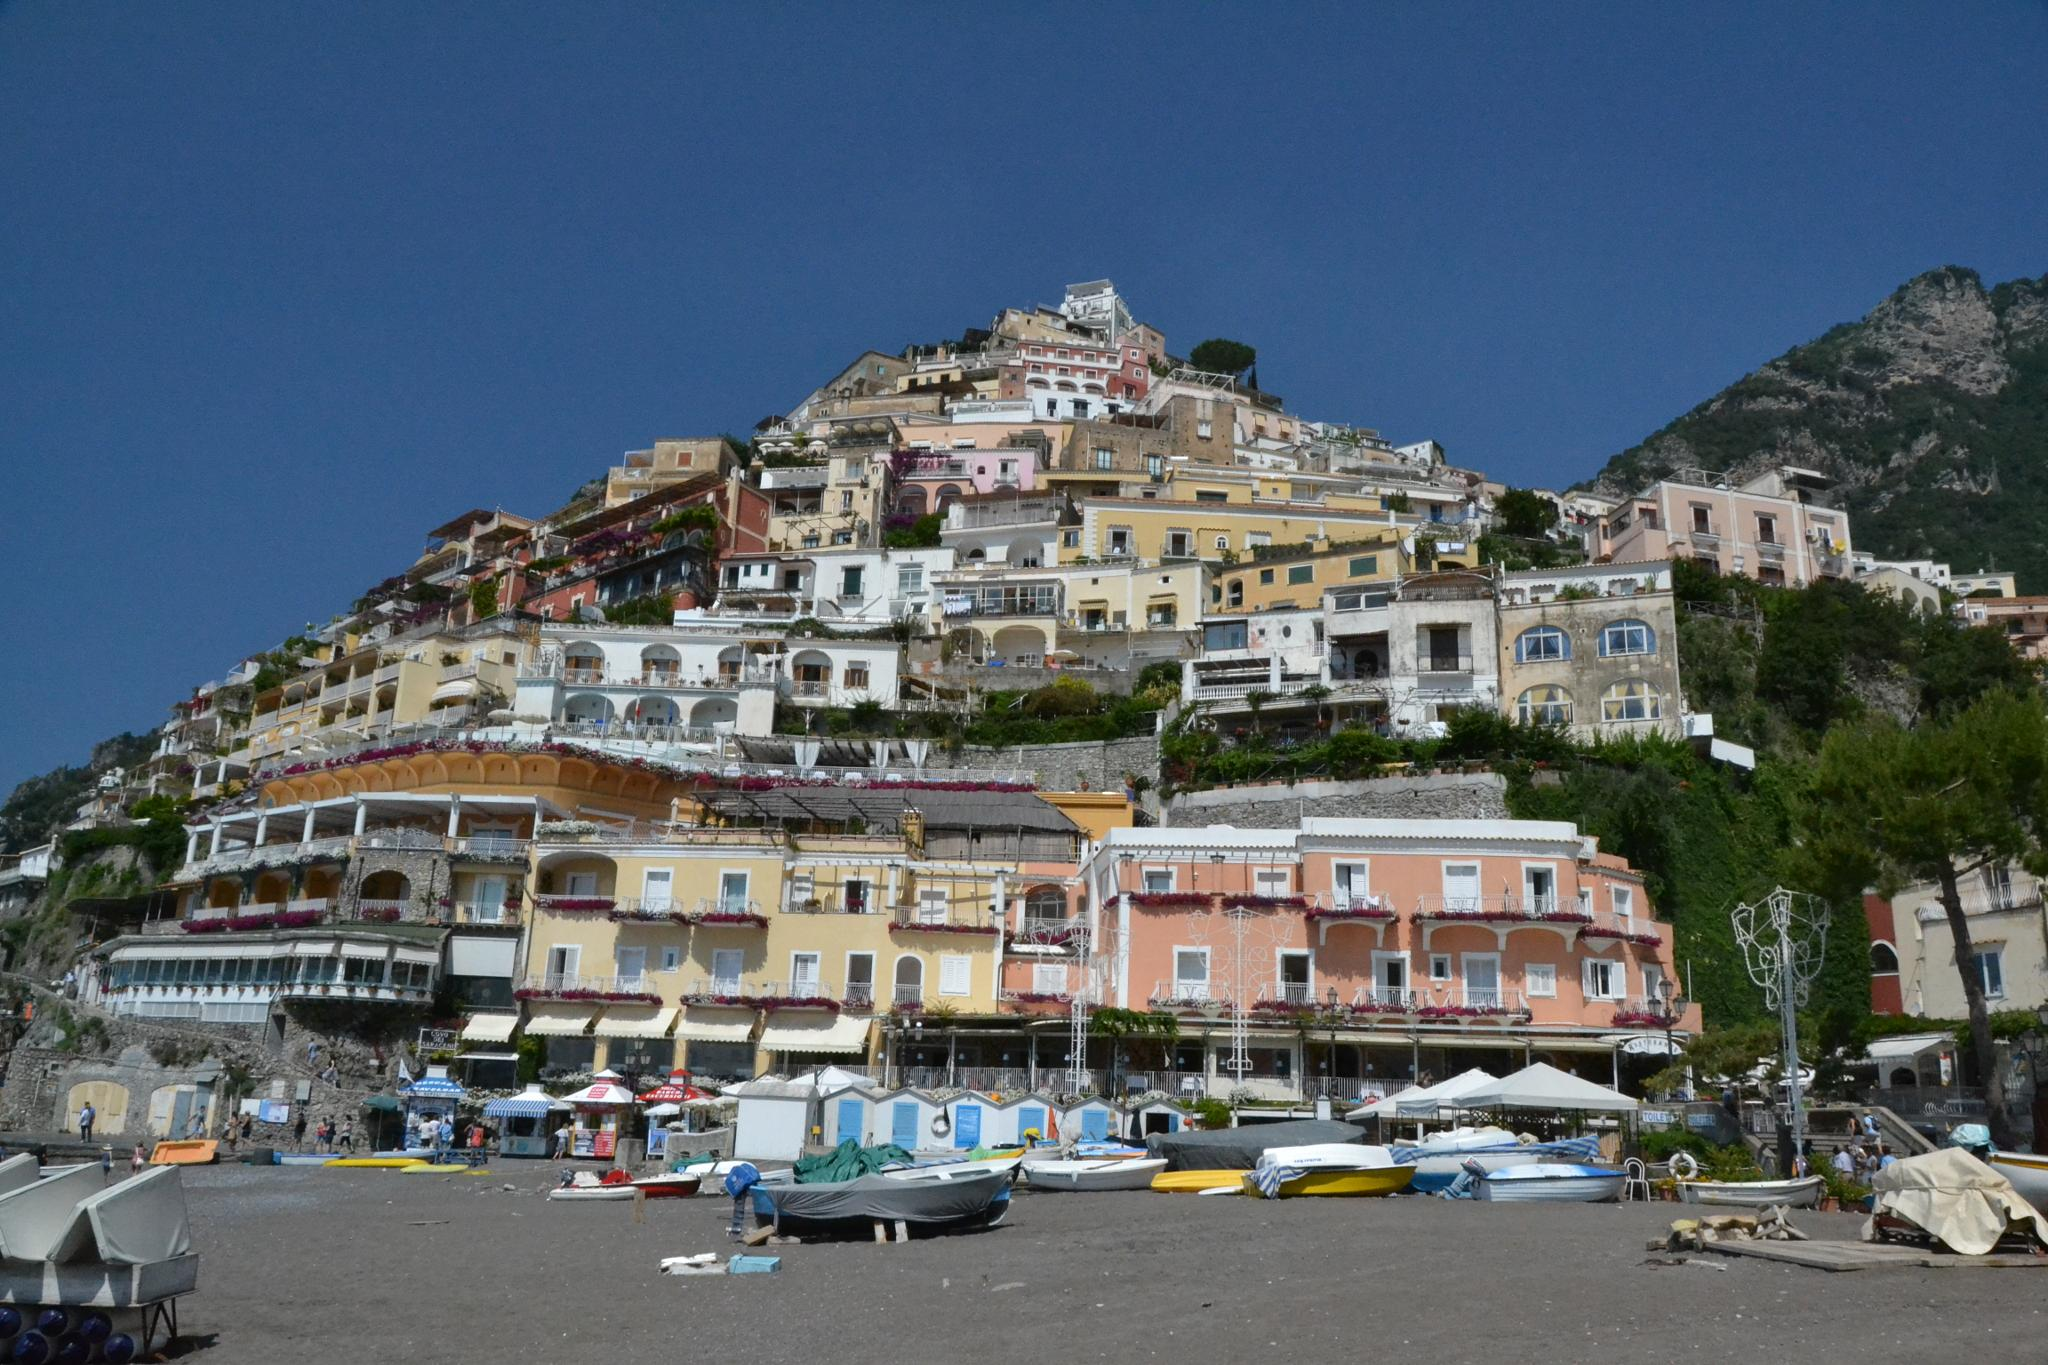 Positano by stephen.spencer.737